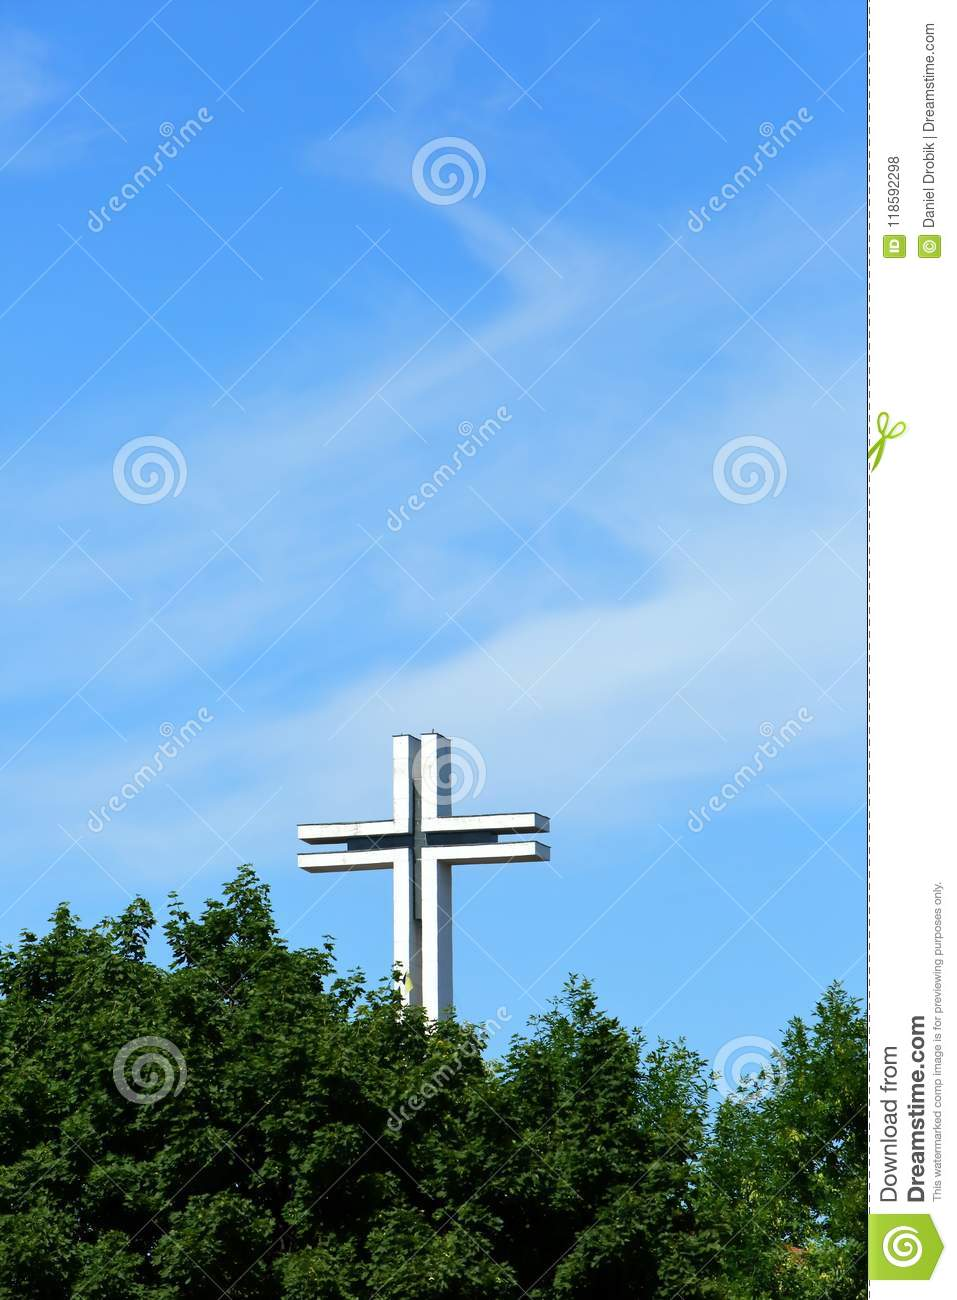 White Big Cross Against The Sky Shining Through Green Tree Crowns